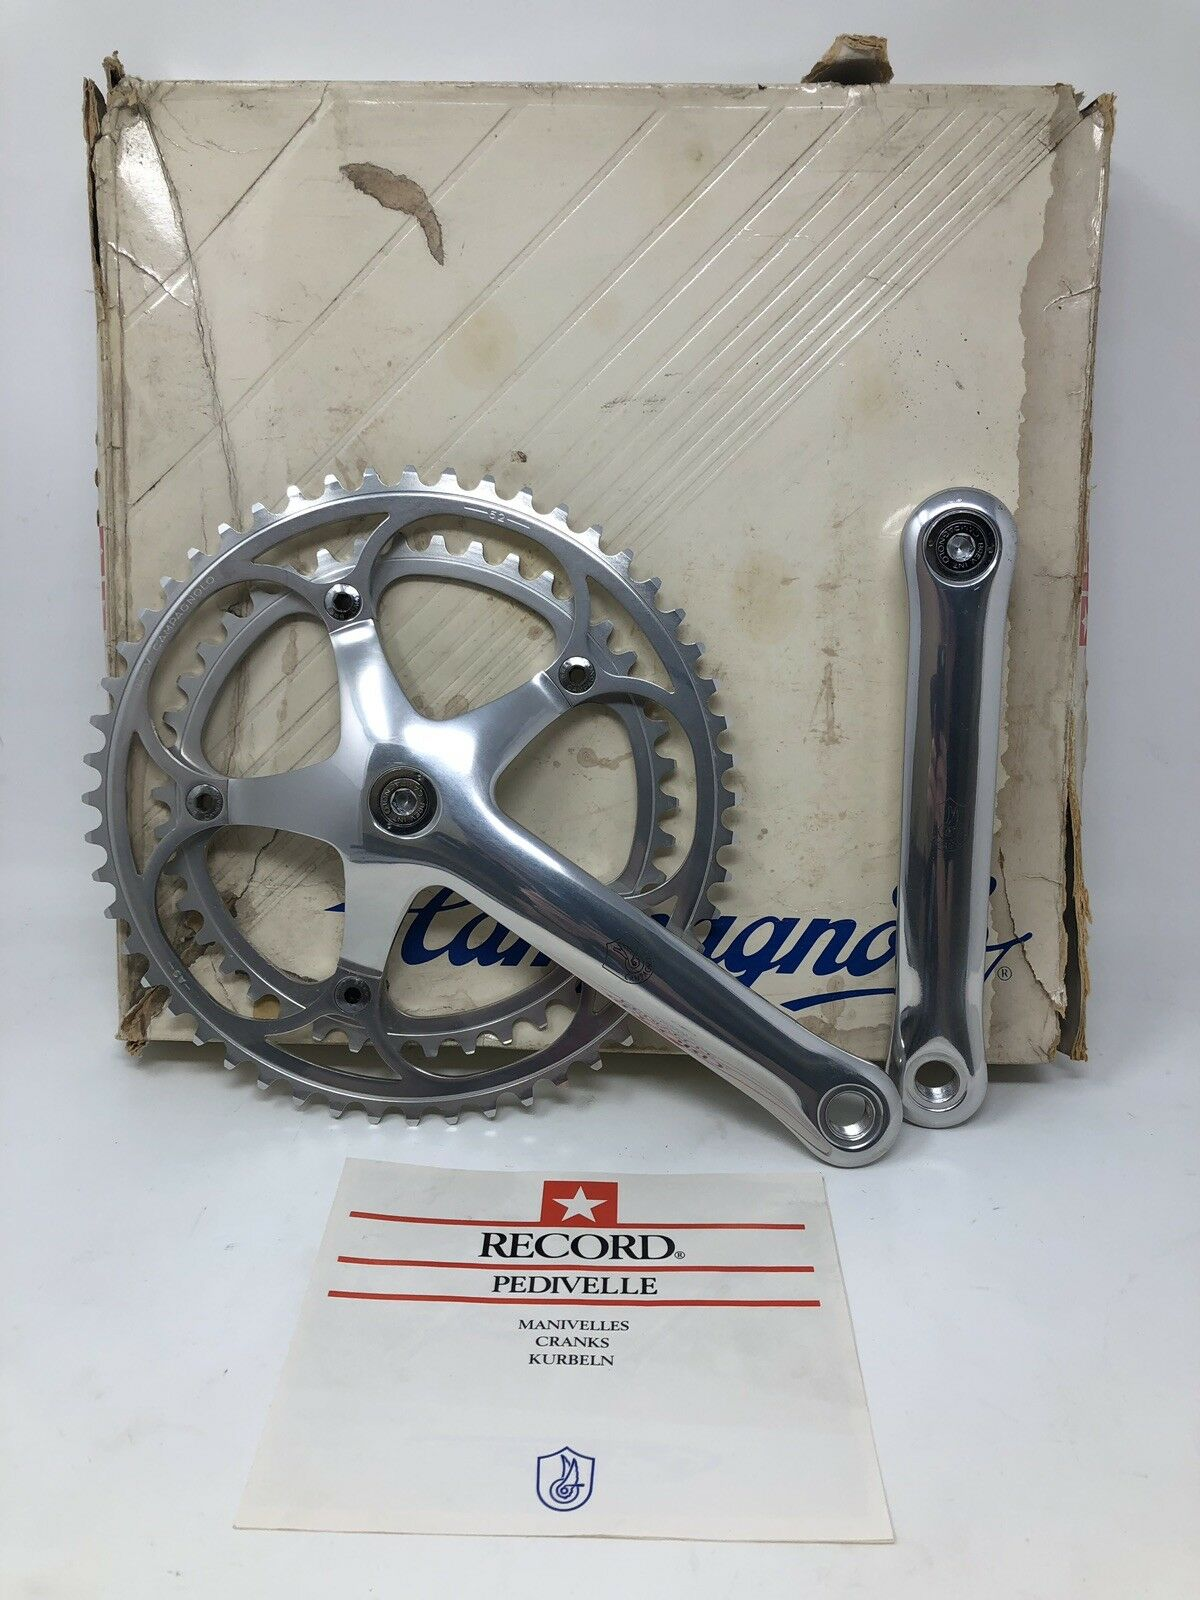 nuovo OLD STOCK Campagnolo C Record Crank 5242 170mm 2nd Generation nuovo IN scatola